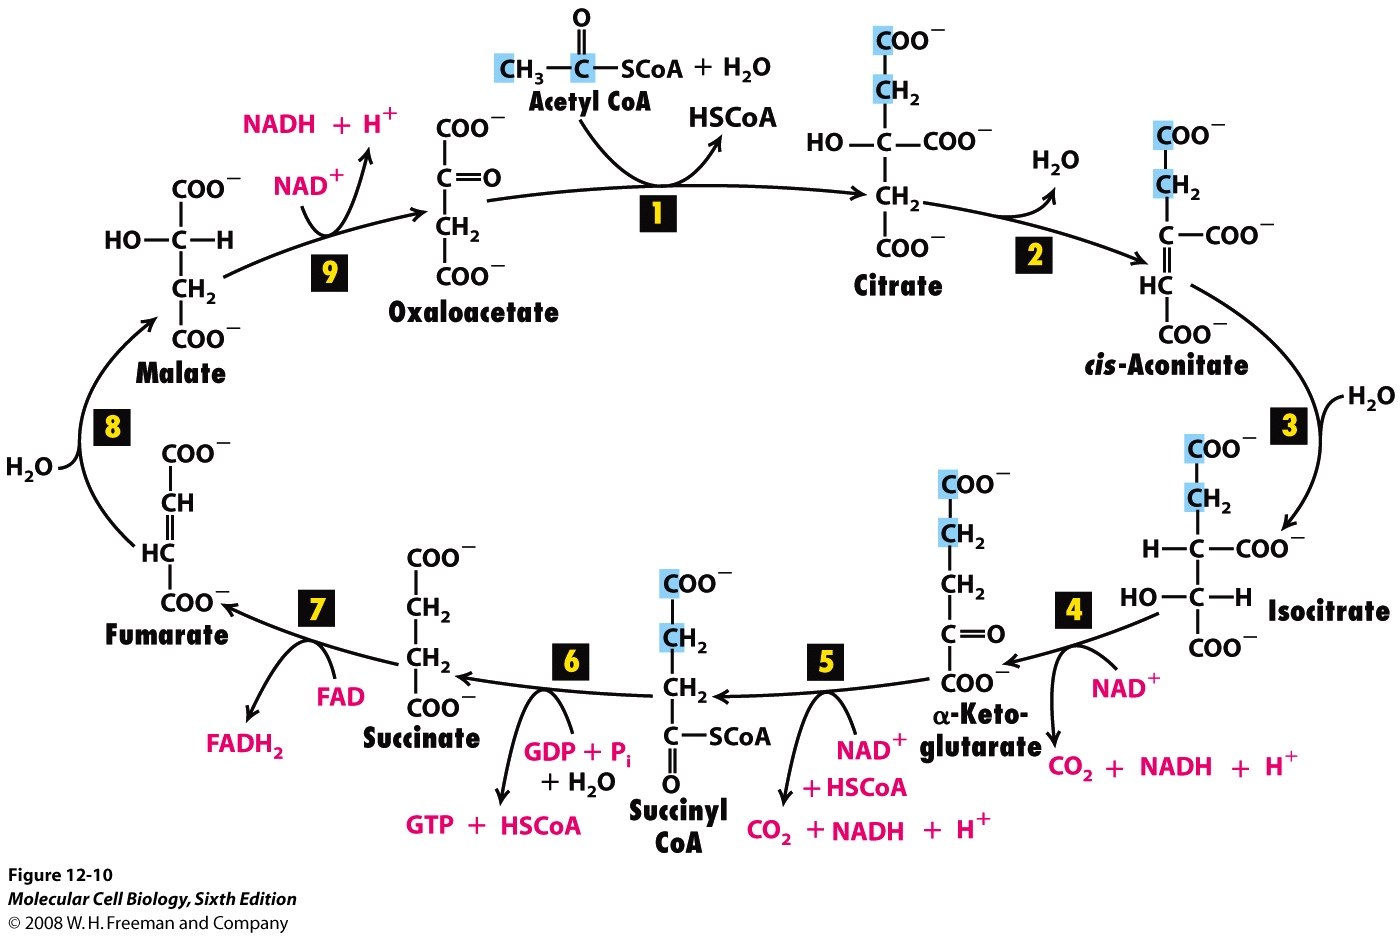 Citric acid cycle 2 the citric acid cycle look fig 12 8 lodish to see an overview of how the citric acid cycle tca cycle fits in to glucose metabolism pooptronica Image collections